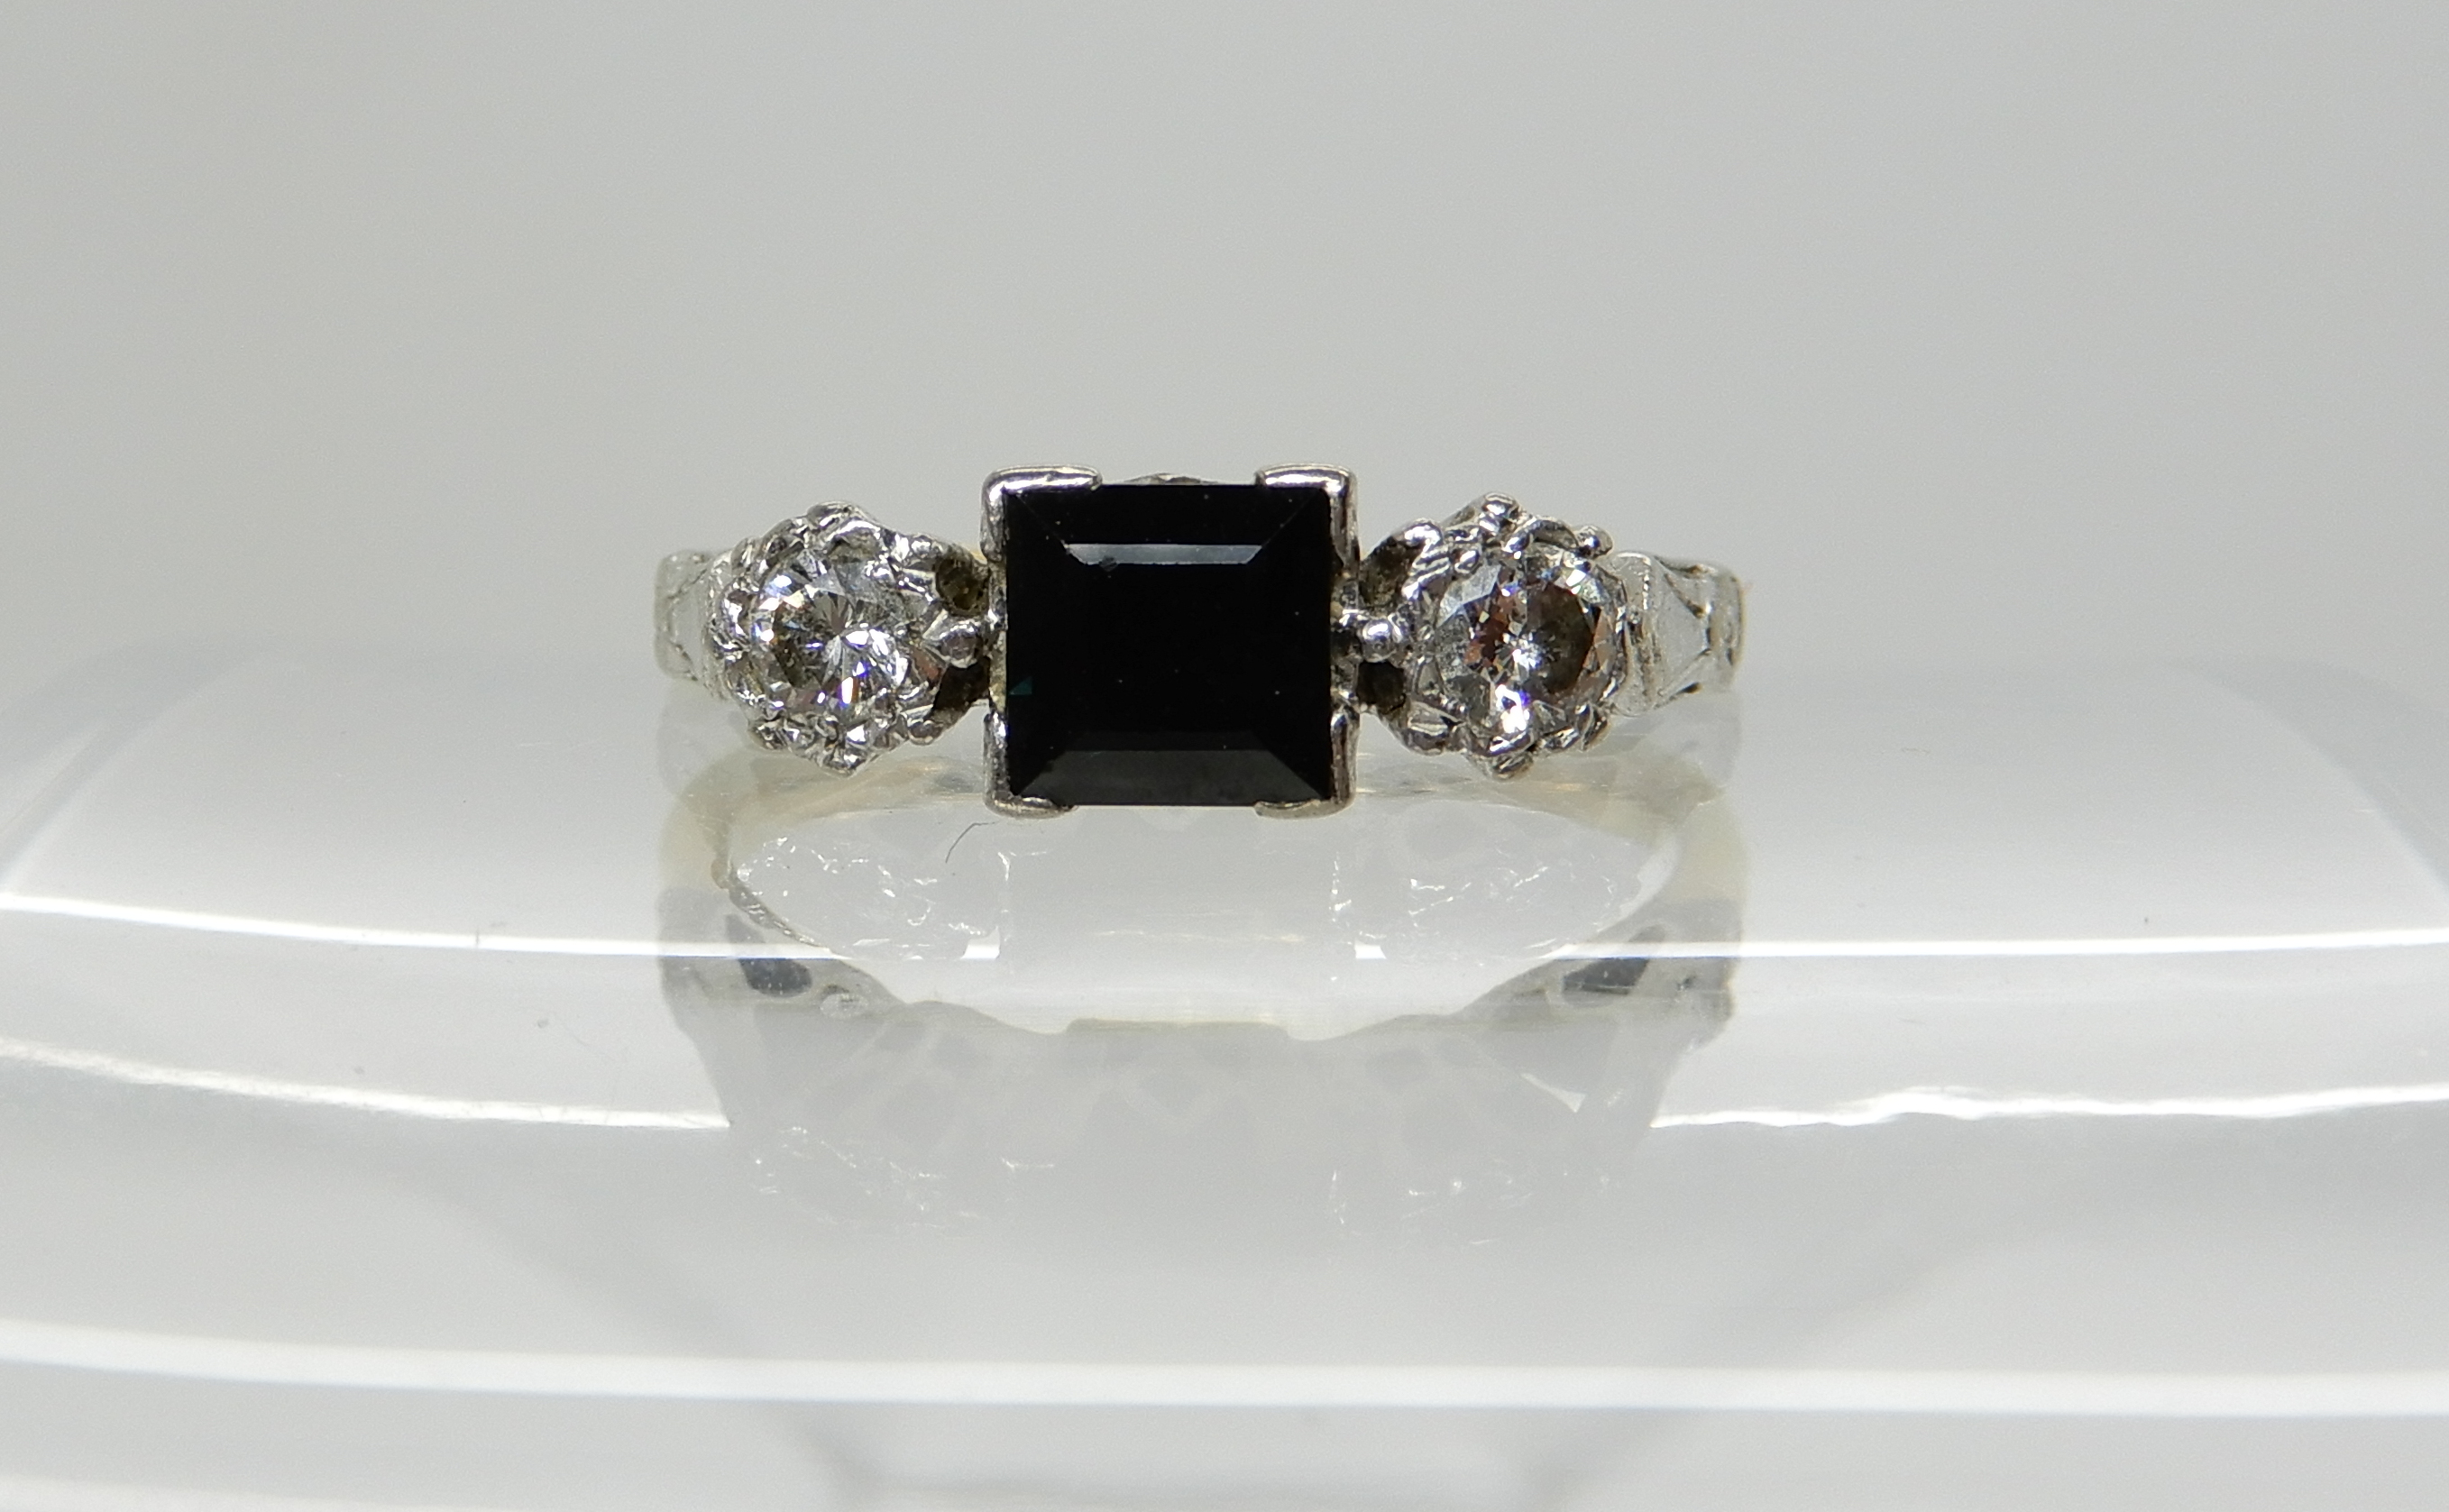 Lot 52 - An 18ct gold and platinum square cut sapphire and diamond ring, diamond content estimated approx 0.